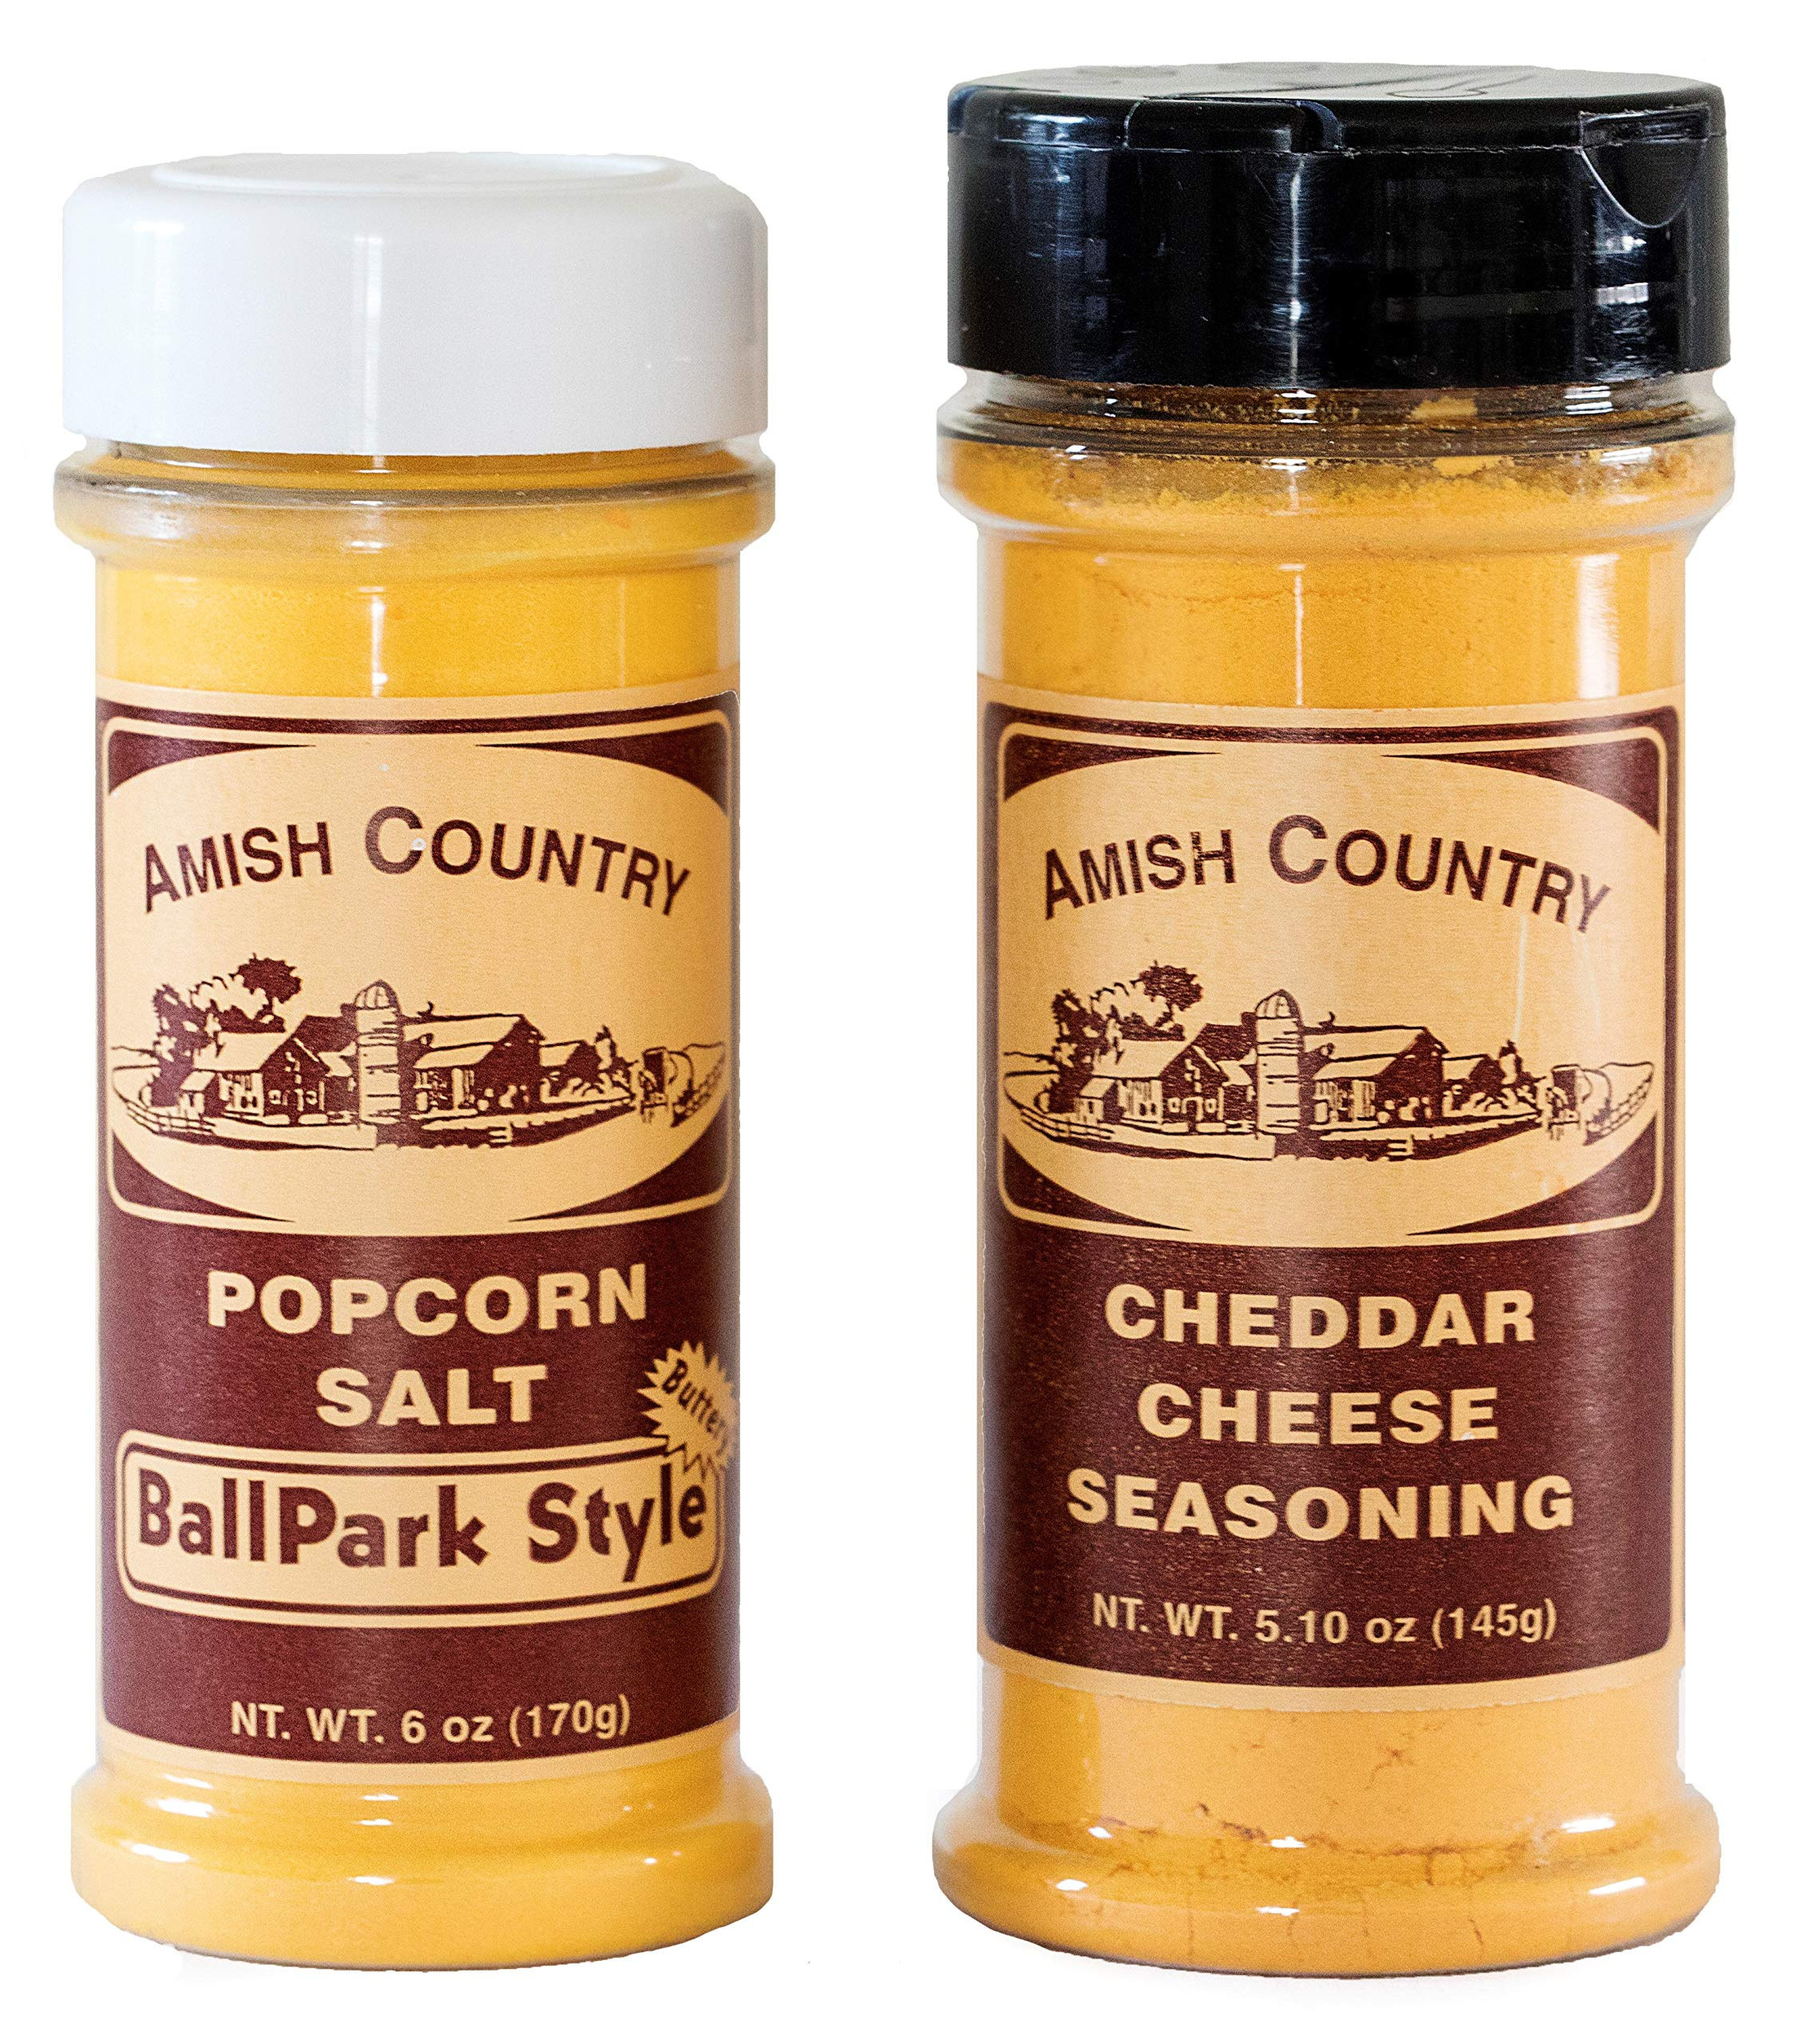 Amish Country Popcorn - BallPark Style ButterSalt (6 Oz) & Cheddar Cheese (5.1 Oz) Popcorn Seasoning - Old Fashioned with Recipe Guide by Amish Country Popcorn